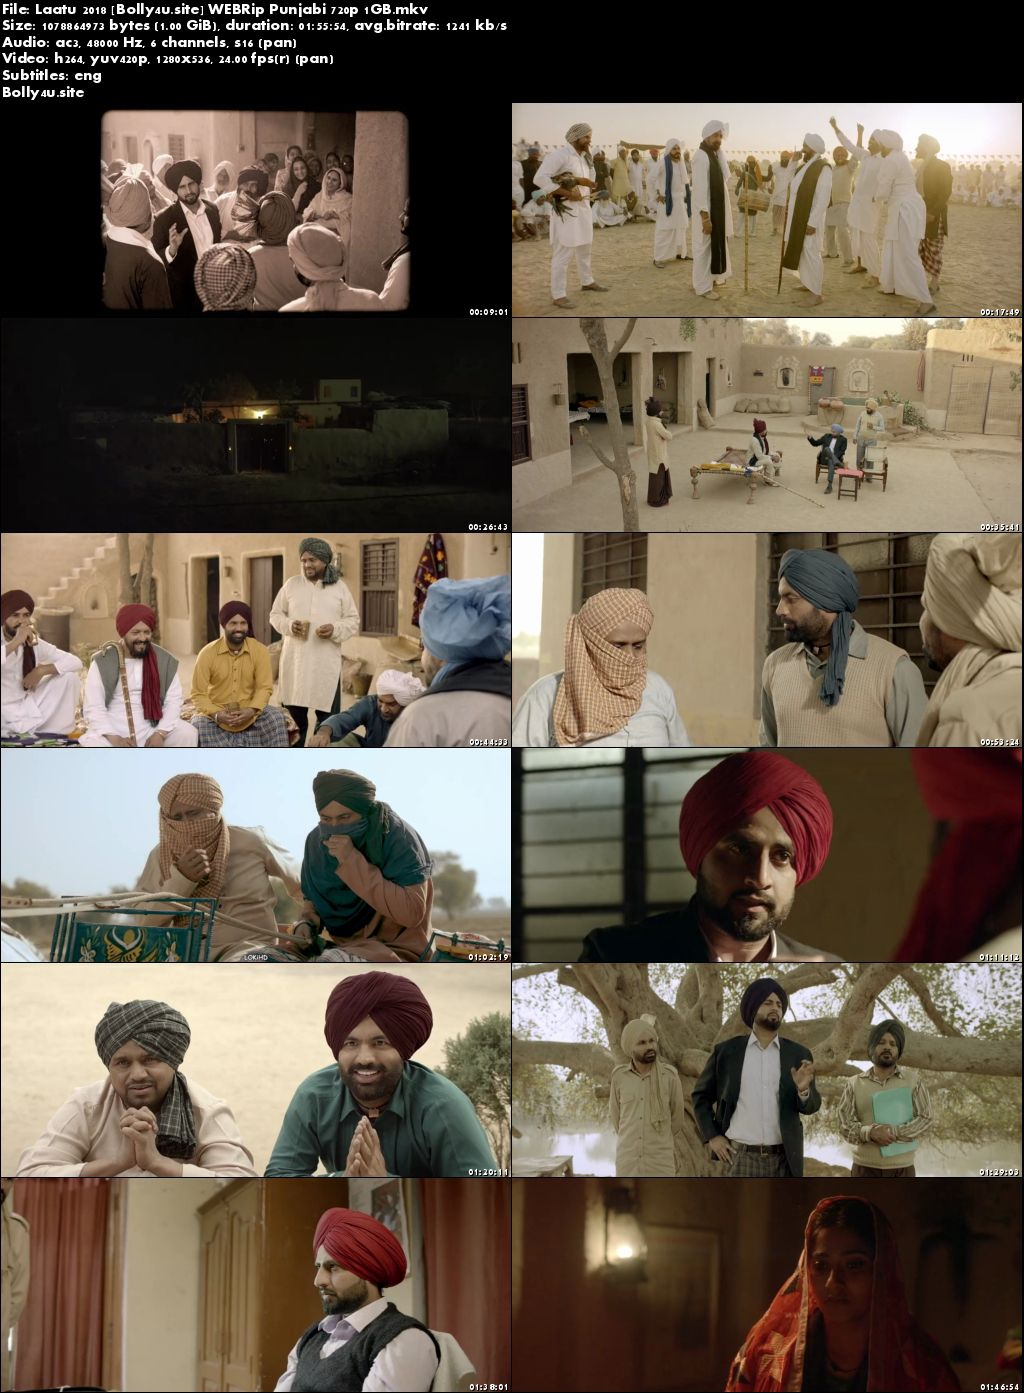 Laatu 2018 WEBRip 1GB Punjabi 720p ESub Download